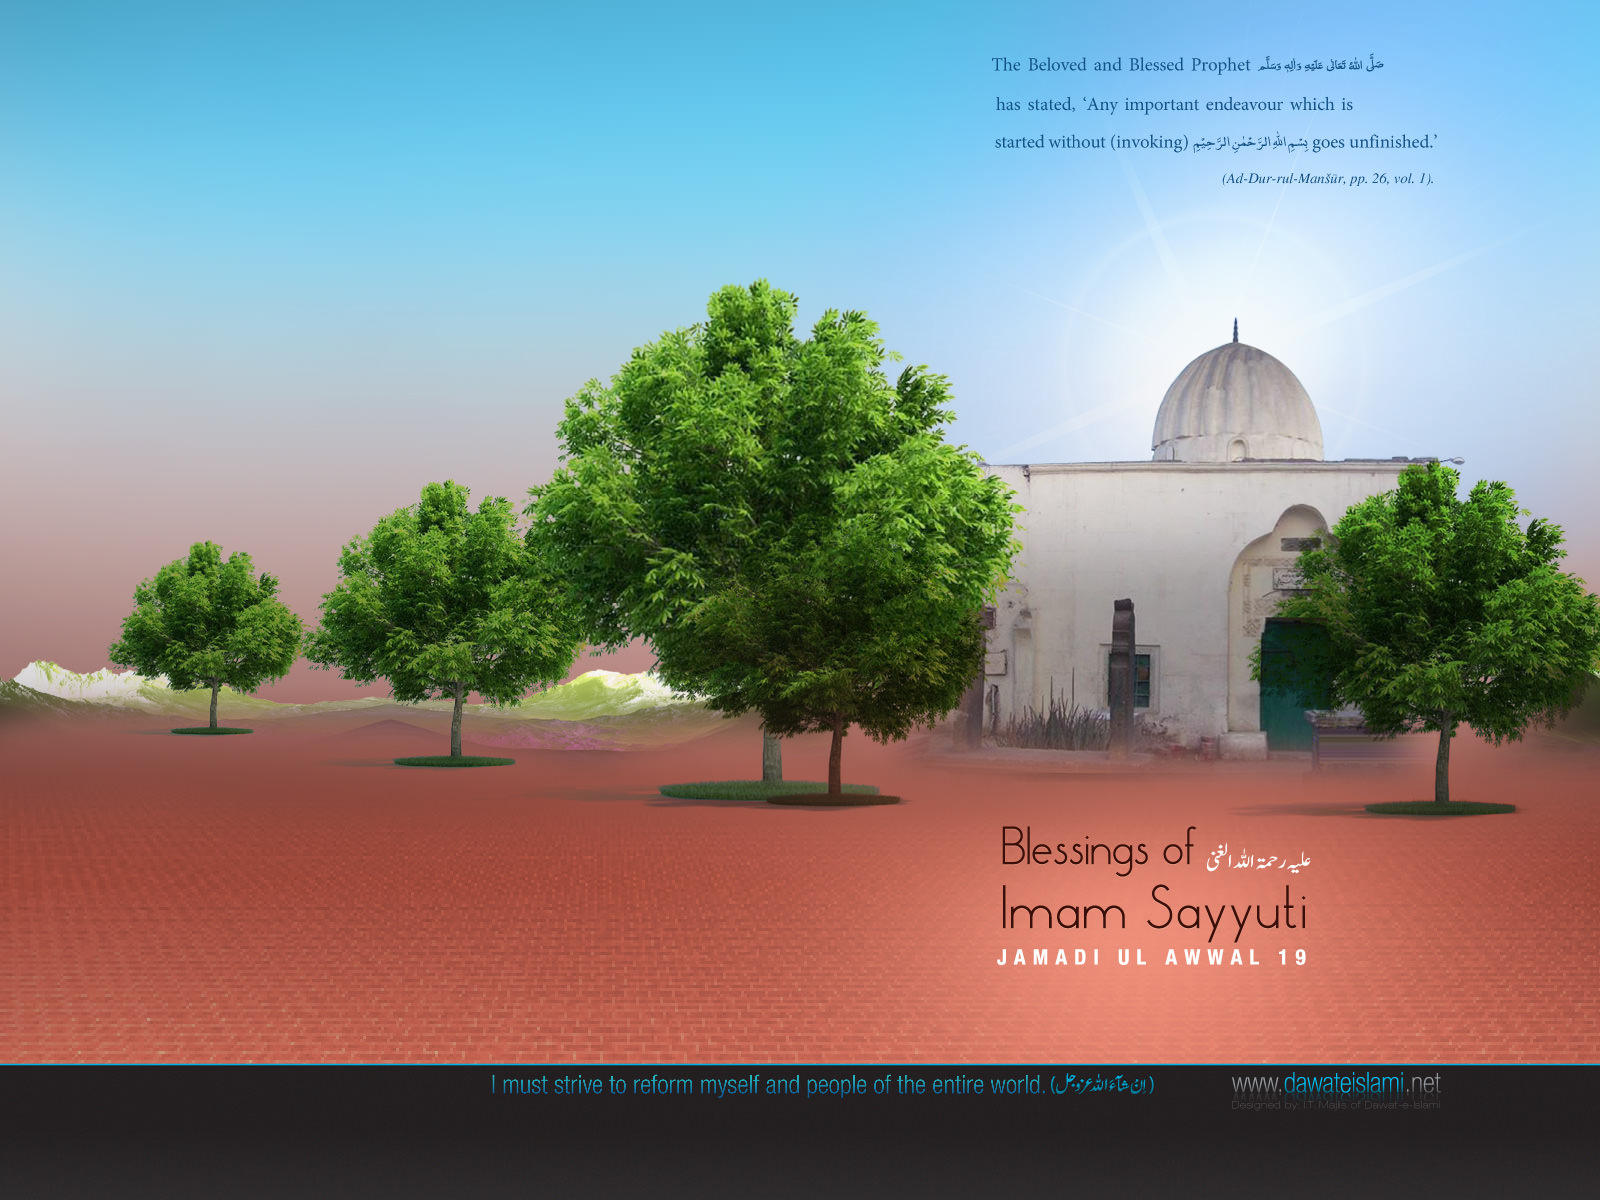 Wallpaper Blessings Of Imam Sayyuti